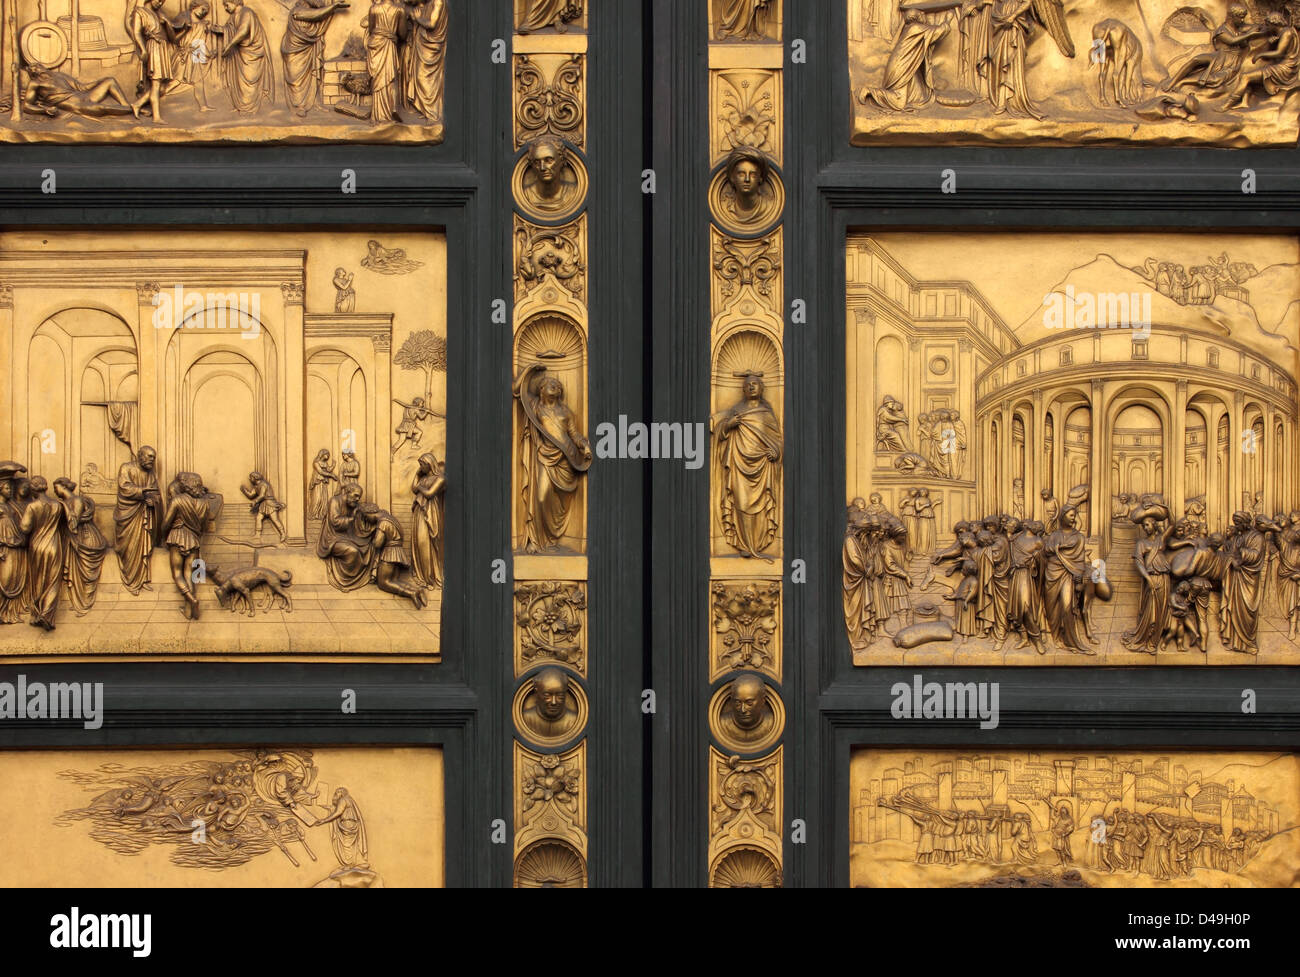 Detail of the Doors of Paradise in Battistero di San Giovanni, Florence, Italy. - Stock Image